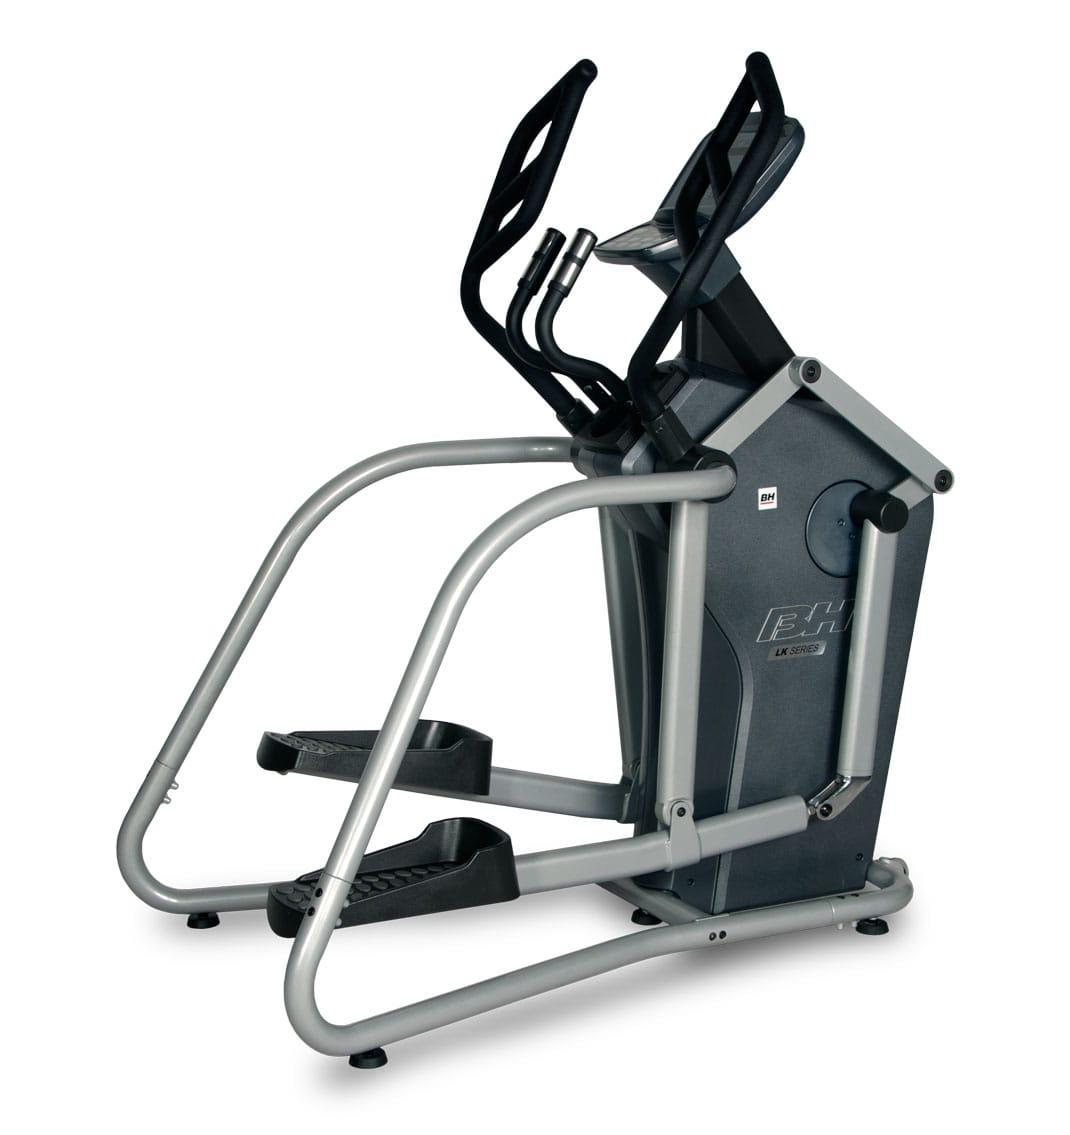 BH Fitness LK500x Elliptical Machine